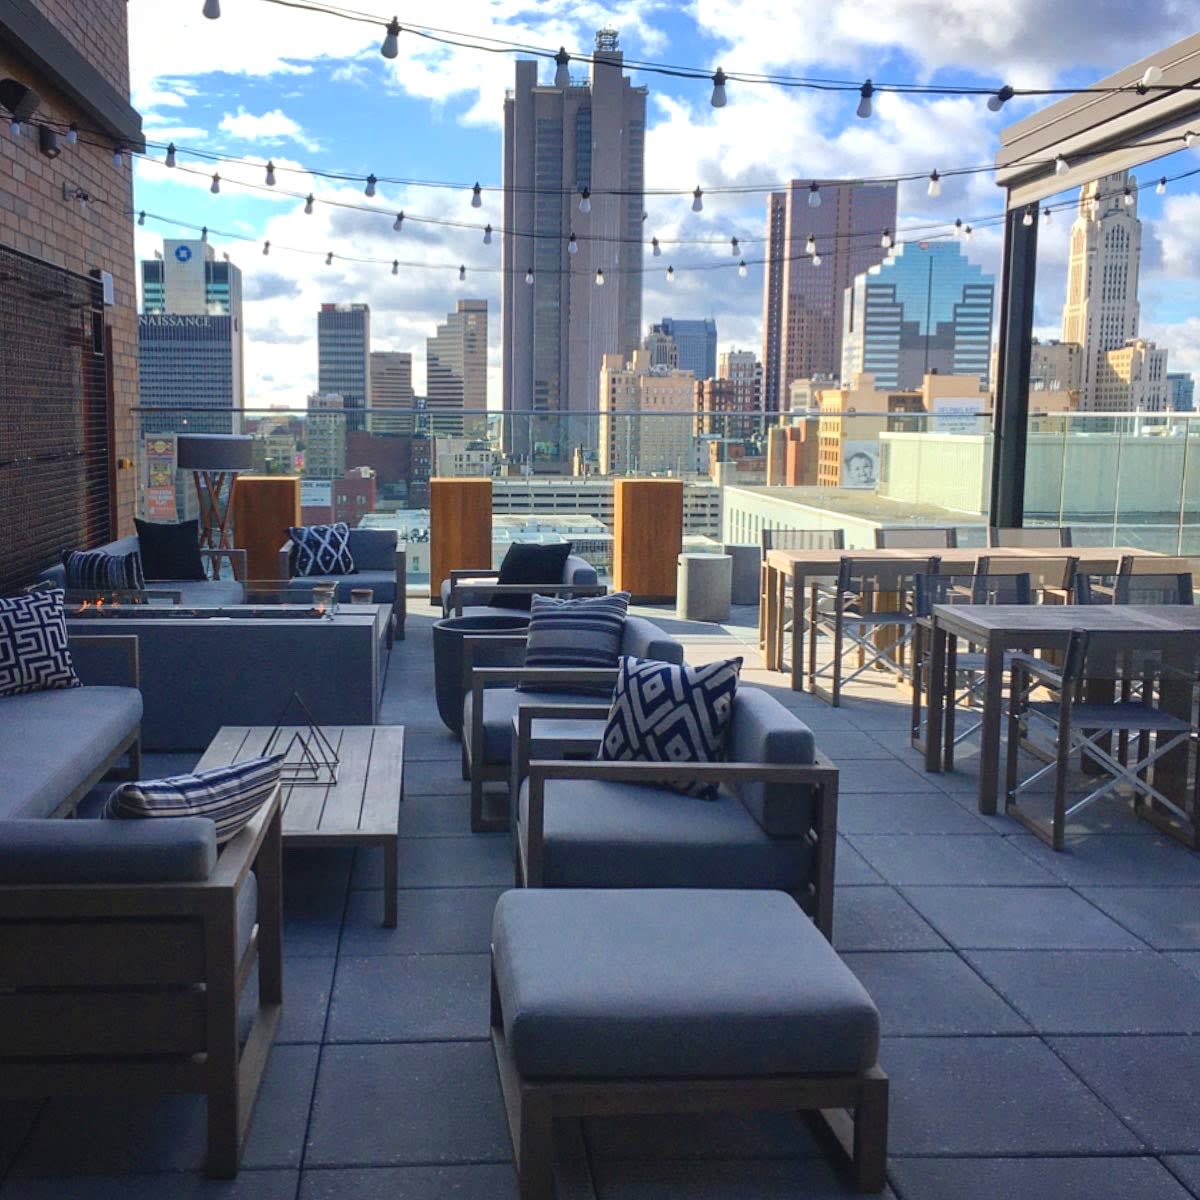 City skyline views and chic patio furniture on stylish rooftop bar at Goodale Station at Canopy by Hilton